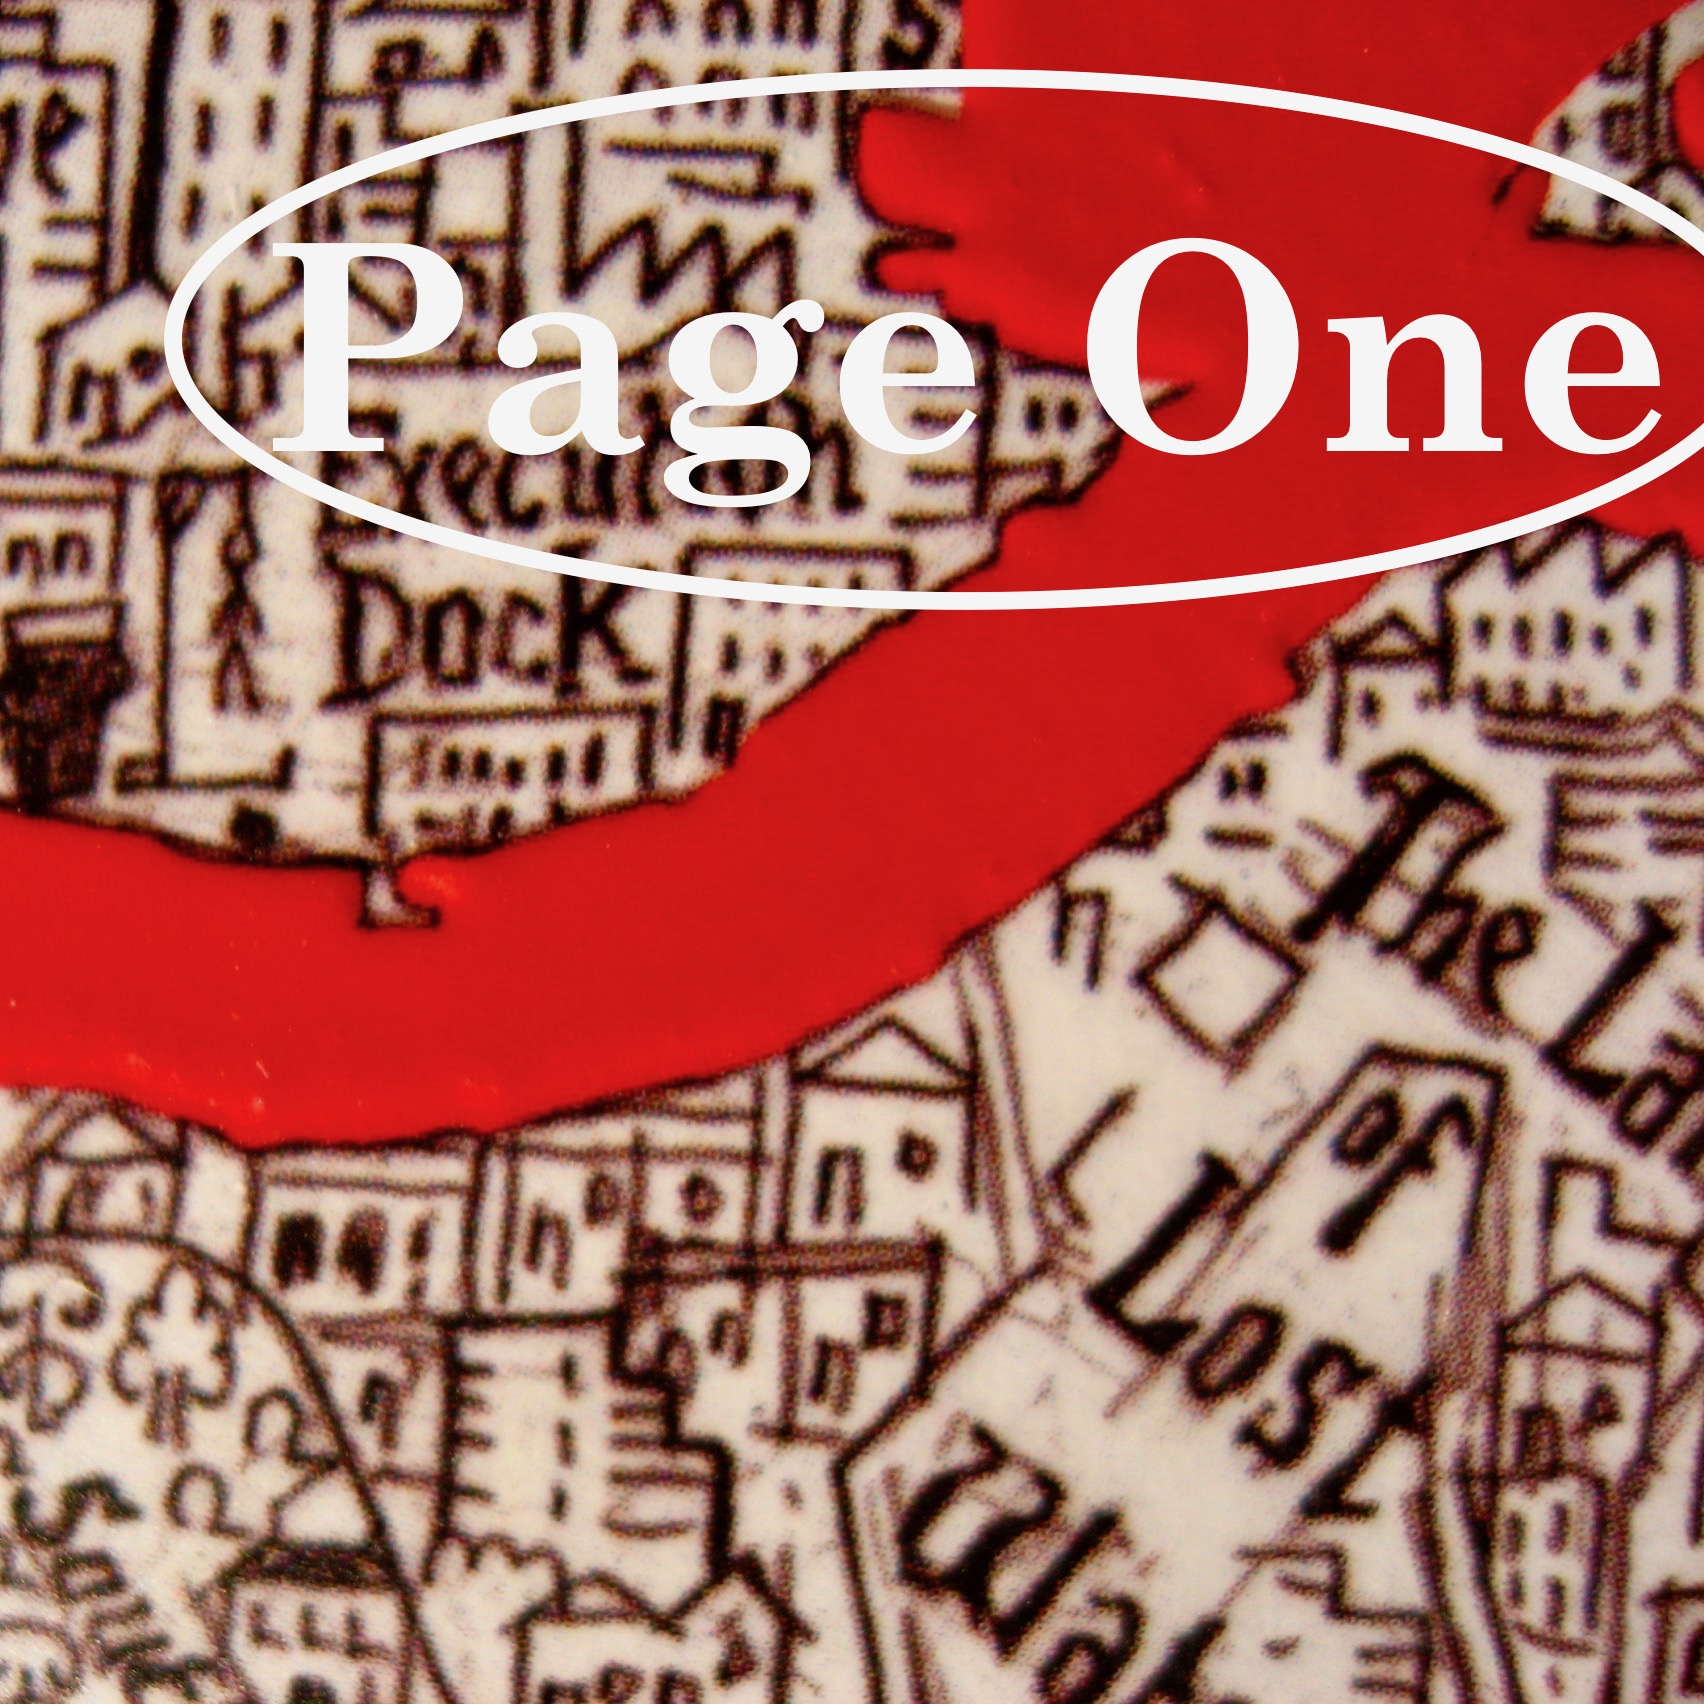 Episode image is a detail from the cover of  Rivers Of London  by Ben Aaronovitch, published by Gollancz in 2011; cover illustration © Stephen Walter; image courtesy of the Artist/TAG Fine Arts; image taken from The Island – London Series, published by TAG Fine Arts; design ©  www.patrickknowlesdesign.com